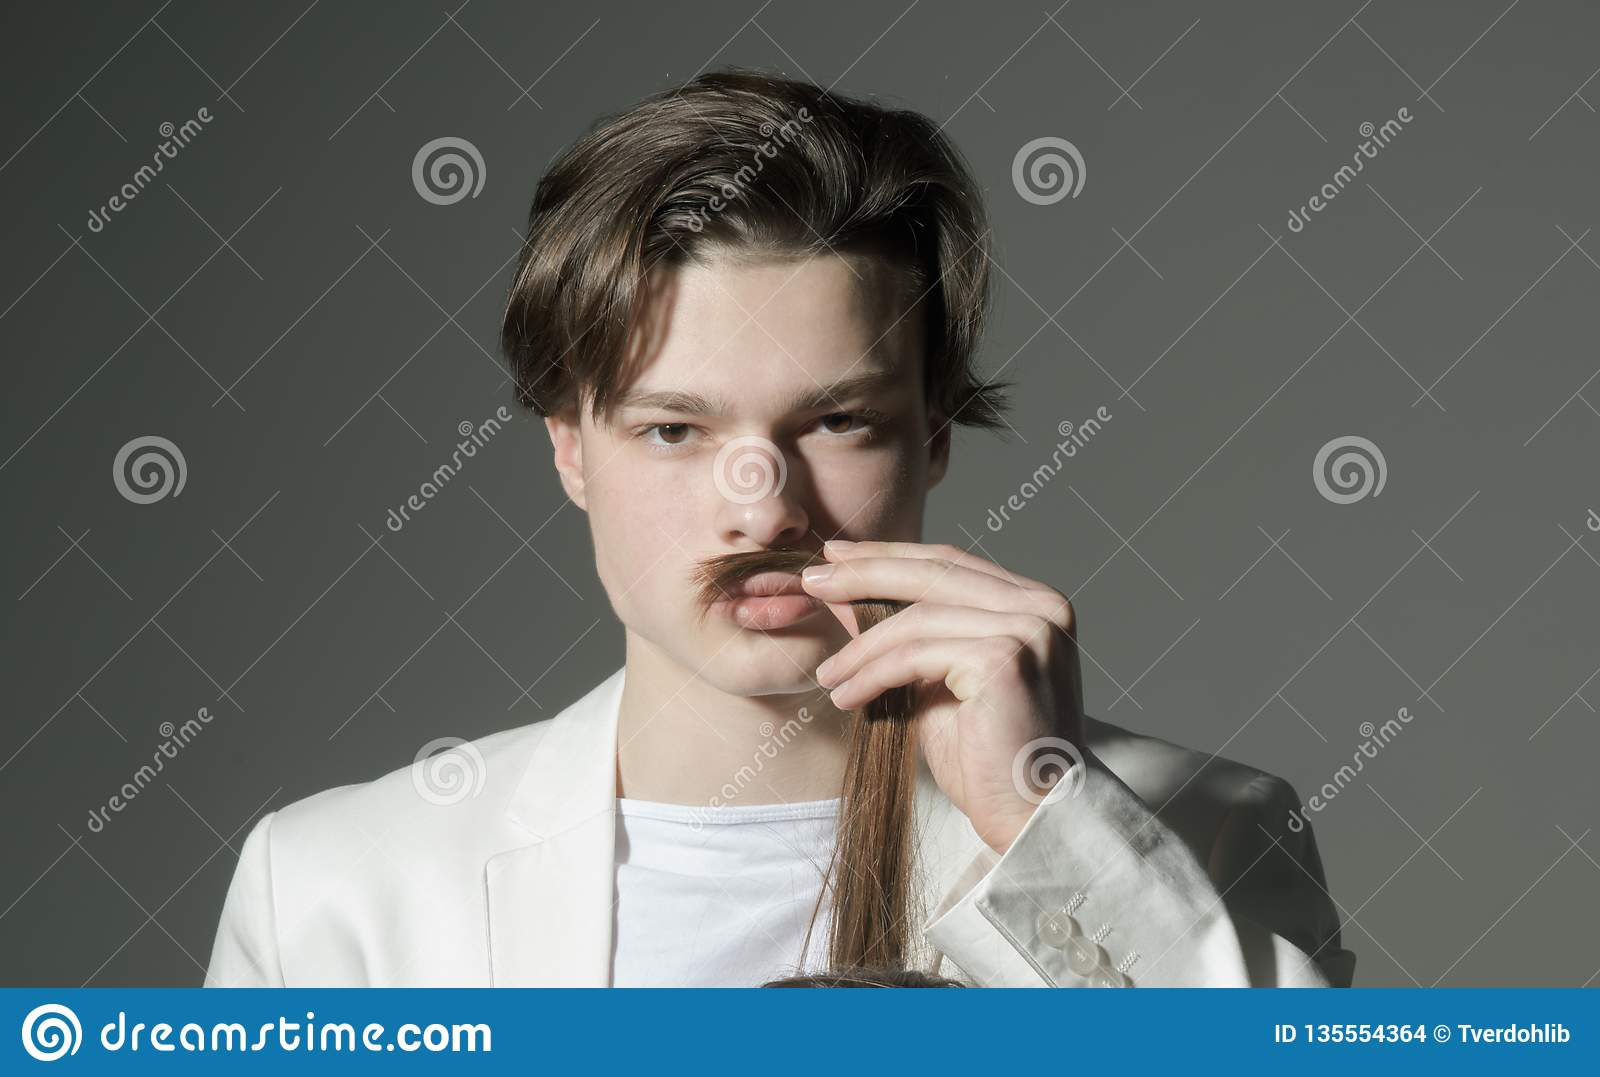 Modern male. Hair style and skincare. Beauty and fashion. Man with trendy look. Fashion man with mystery look. shaving